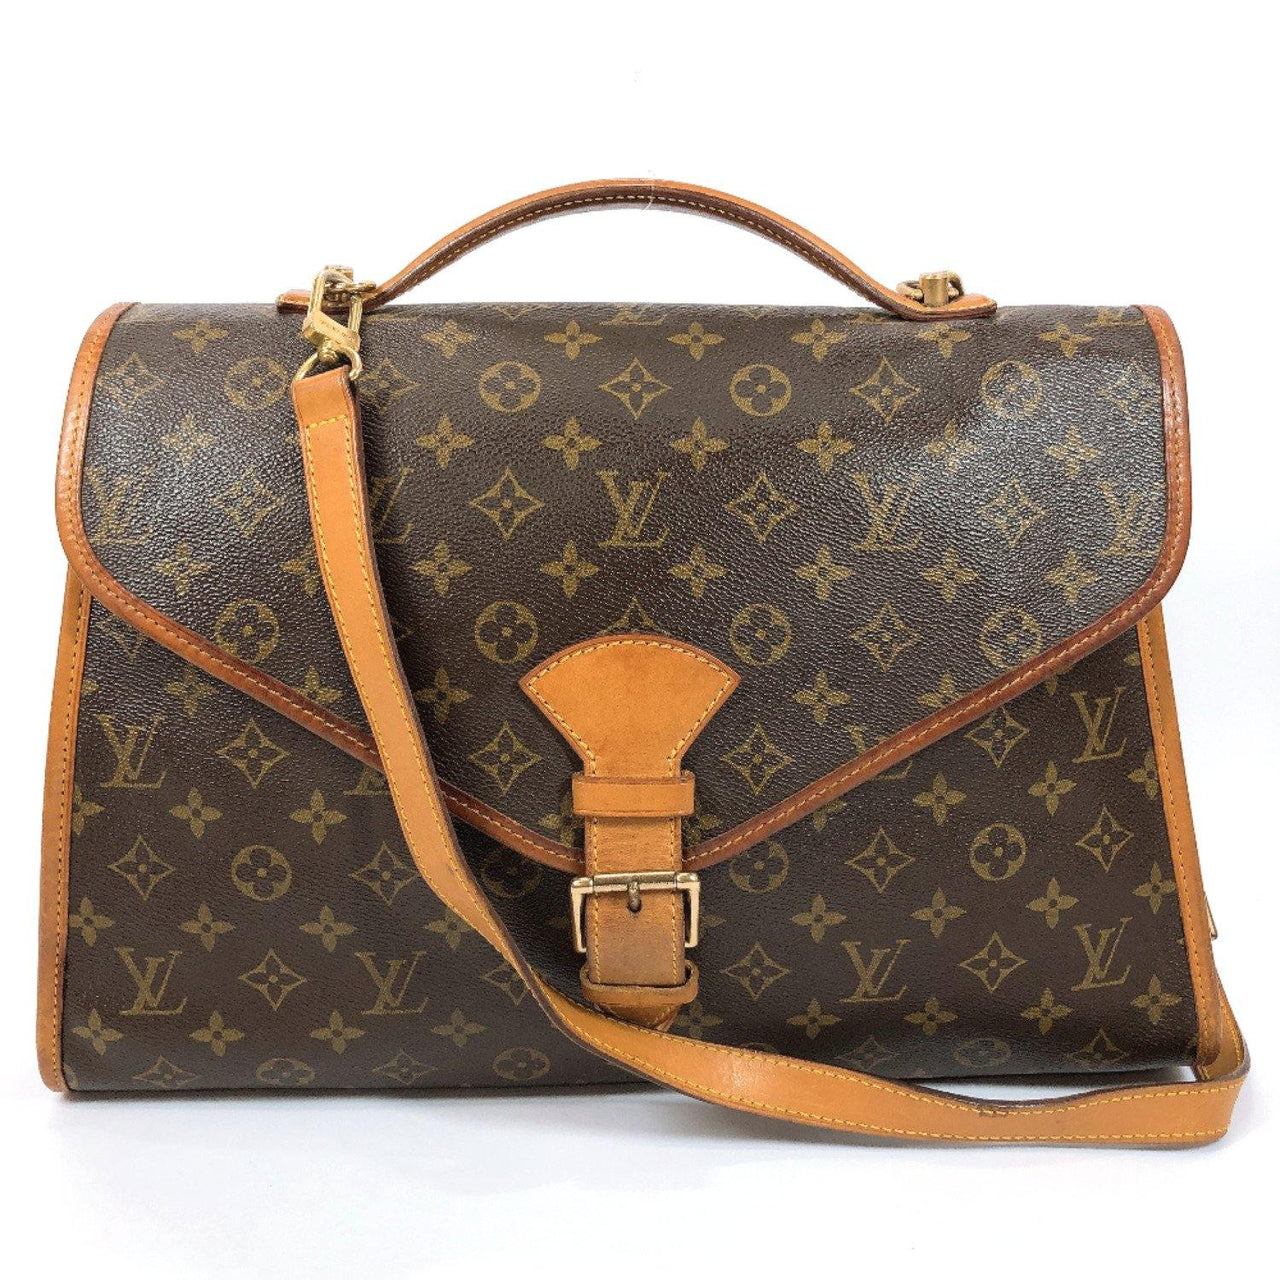 LOUIS VUITTON Shoulder Bag M51121 Beverly Monogram canvas Brown unisex Used